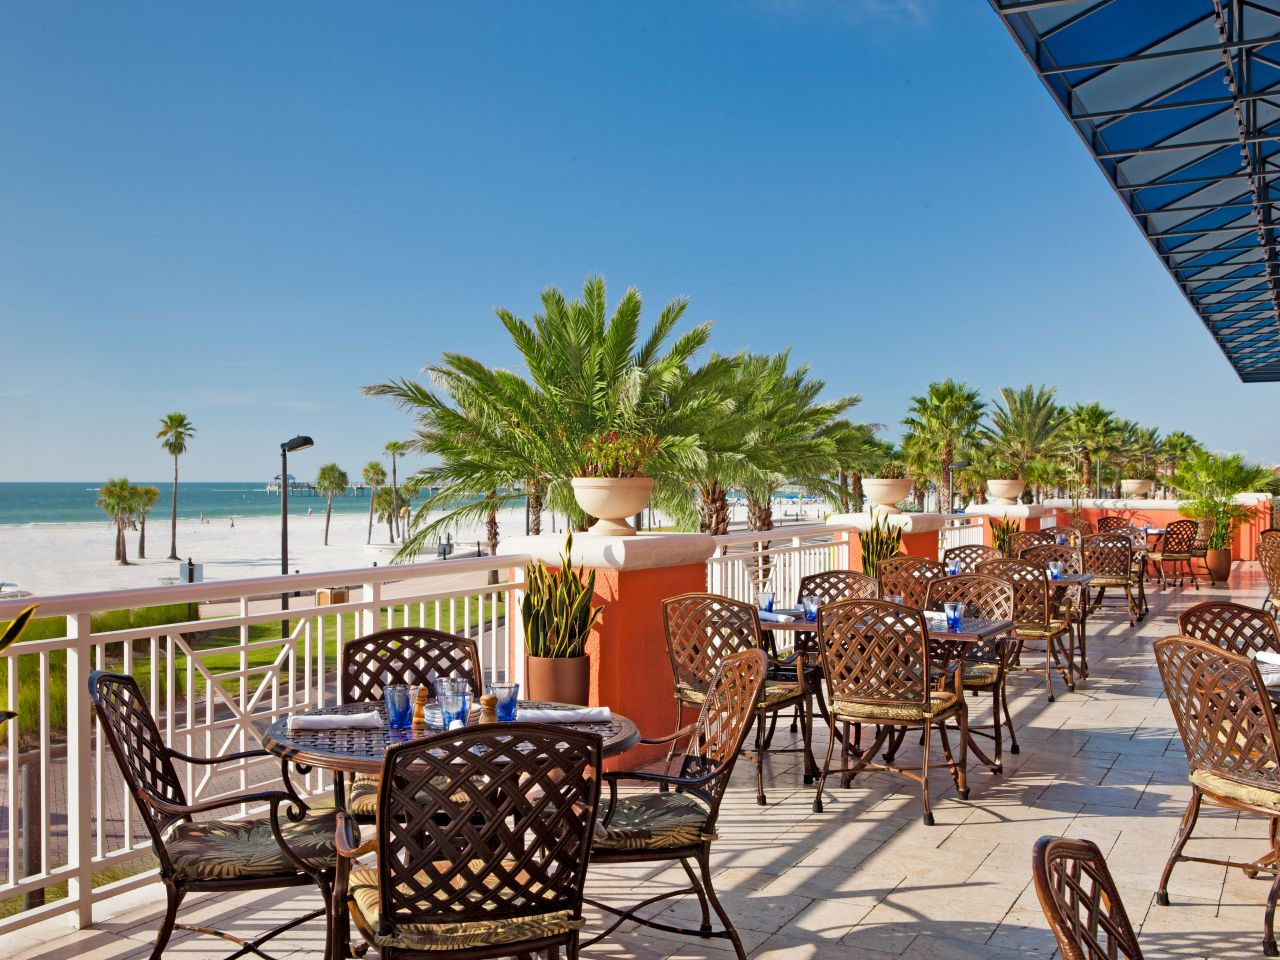 Orlando Restaurant with View of Gulf Hyatt Regency Clearwater Beach Resort